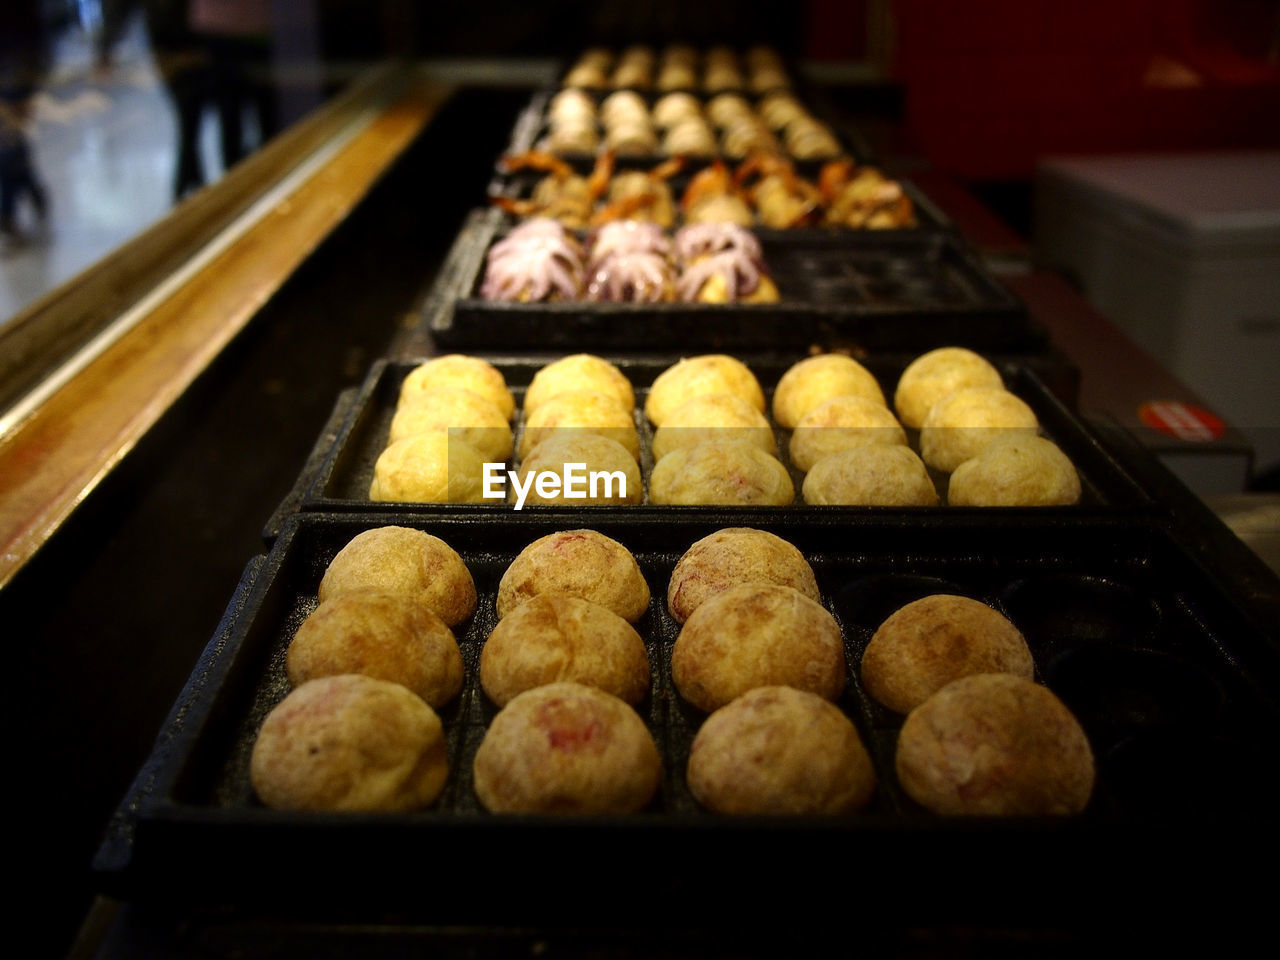 food, food and drink, freshness, in a row, indoors, arrangement, retail, baked, still life, side by side, no people, for sale, sweet food, close-up, ready-to-eat, store, tray, indulgence, order, large group of objects, baking sheet, retail display, temptation, snack, preparing food